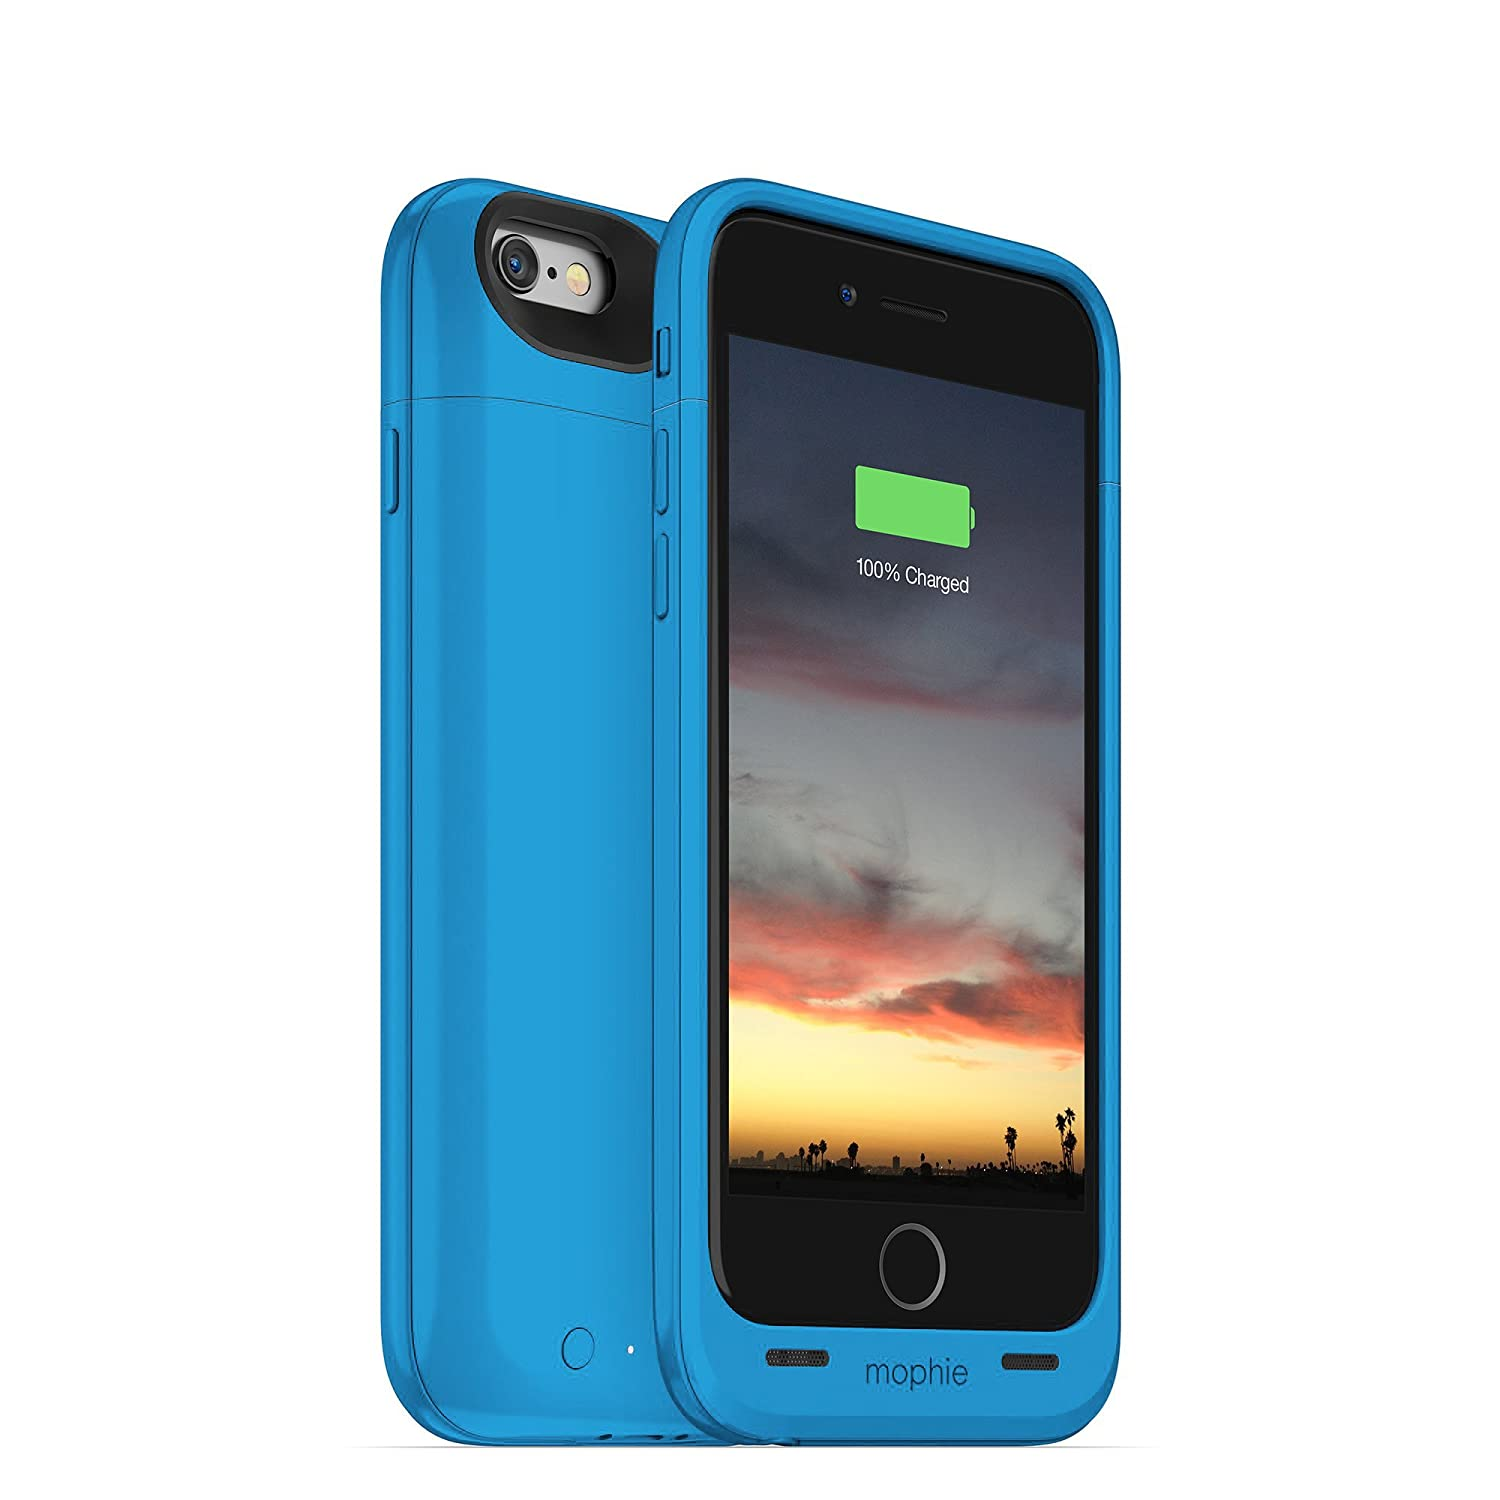 size 40 14ecf 77c48 mophie juice pack air - Slim Protective Mobile Battery Pack Case for iPhone  6/6s - Blue